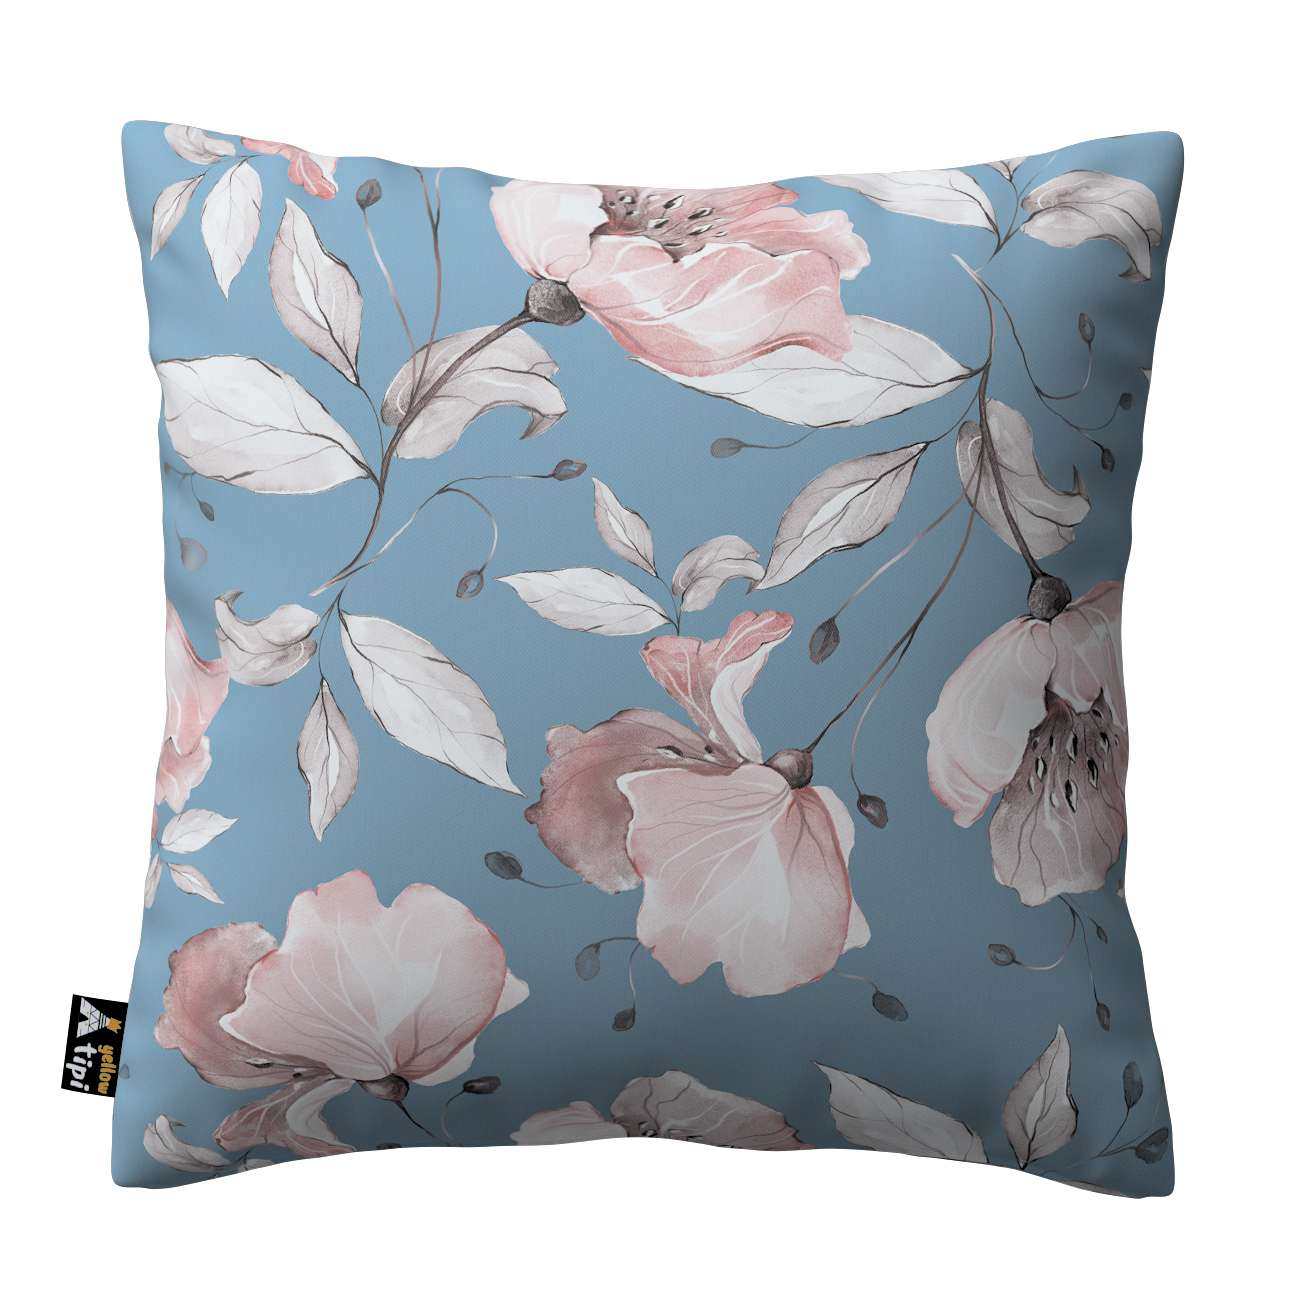 Milly cushion cover in collection Magic Collection, fabric: 500-18